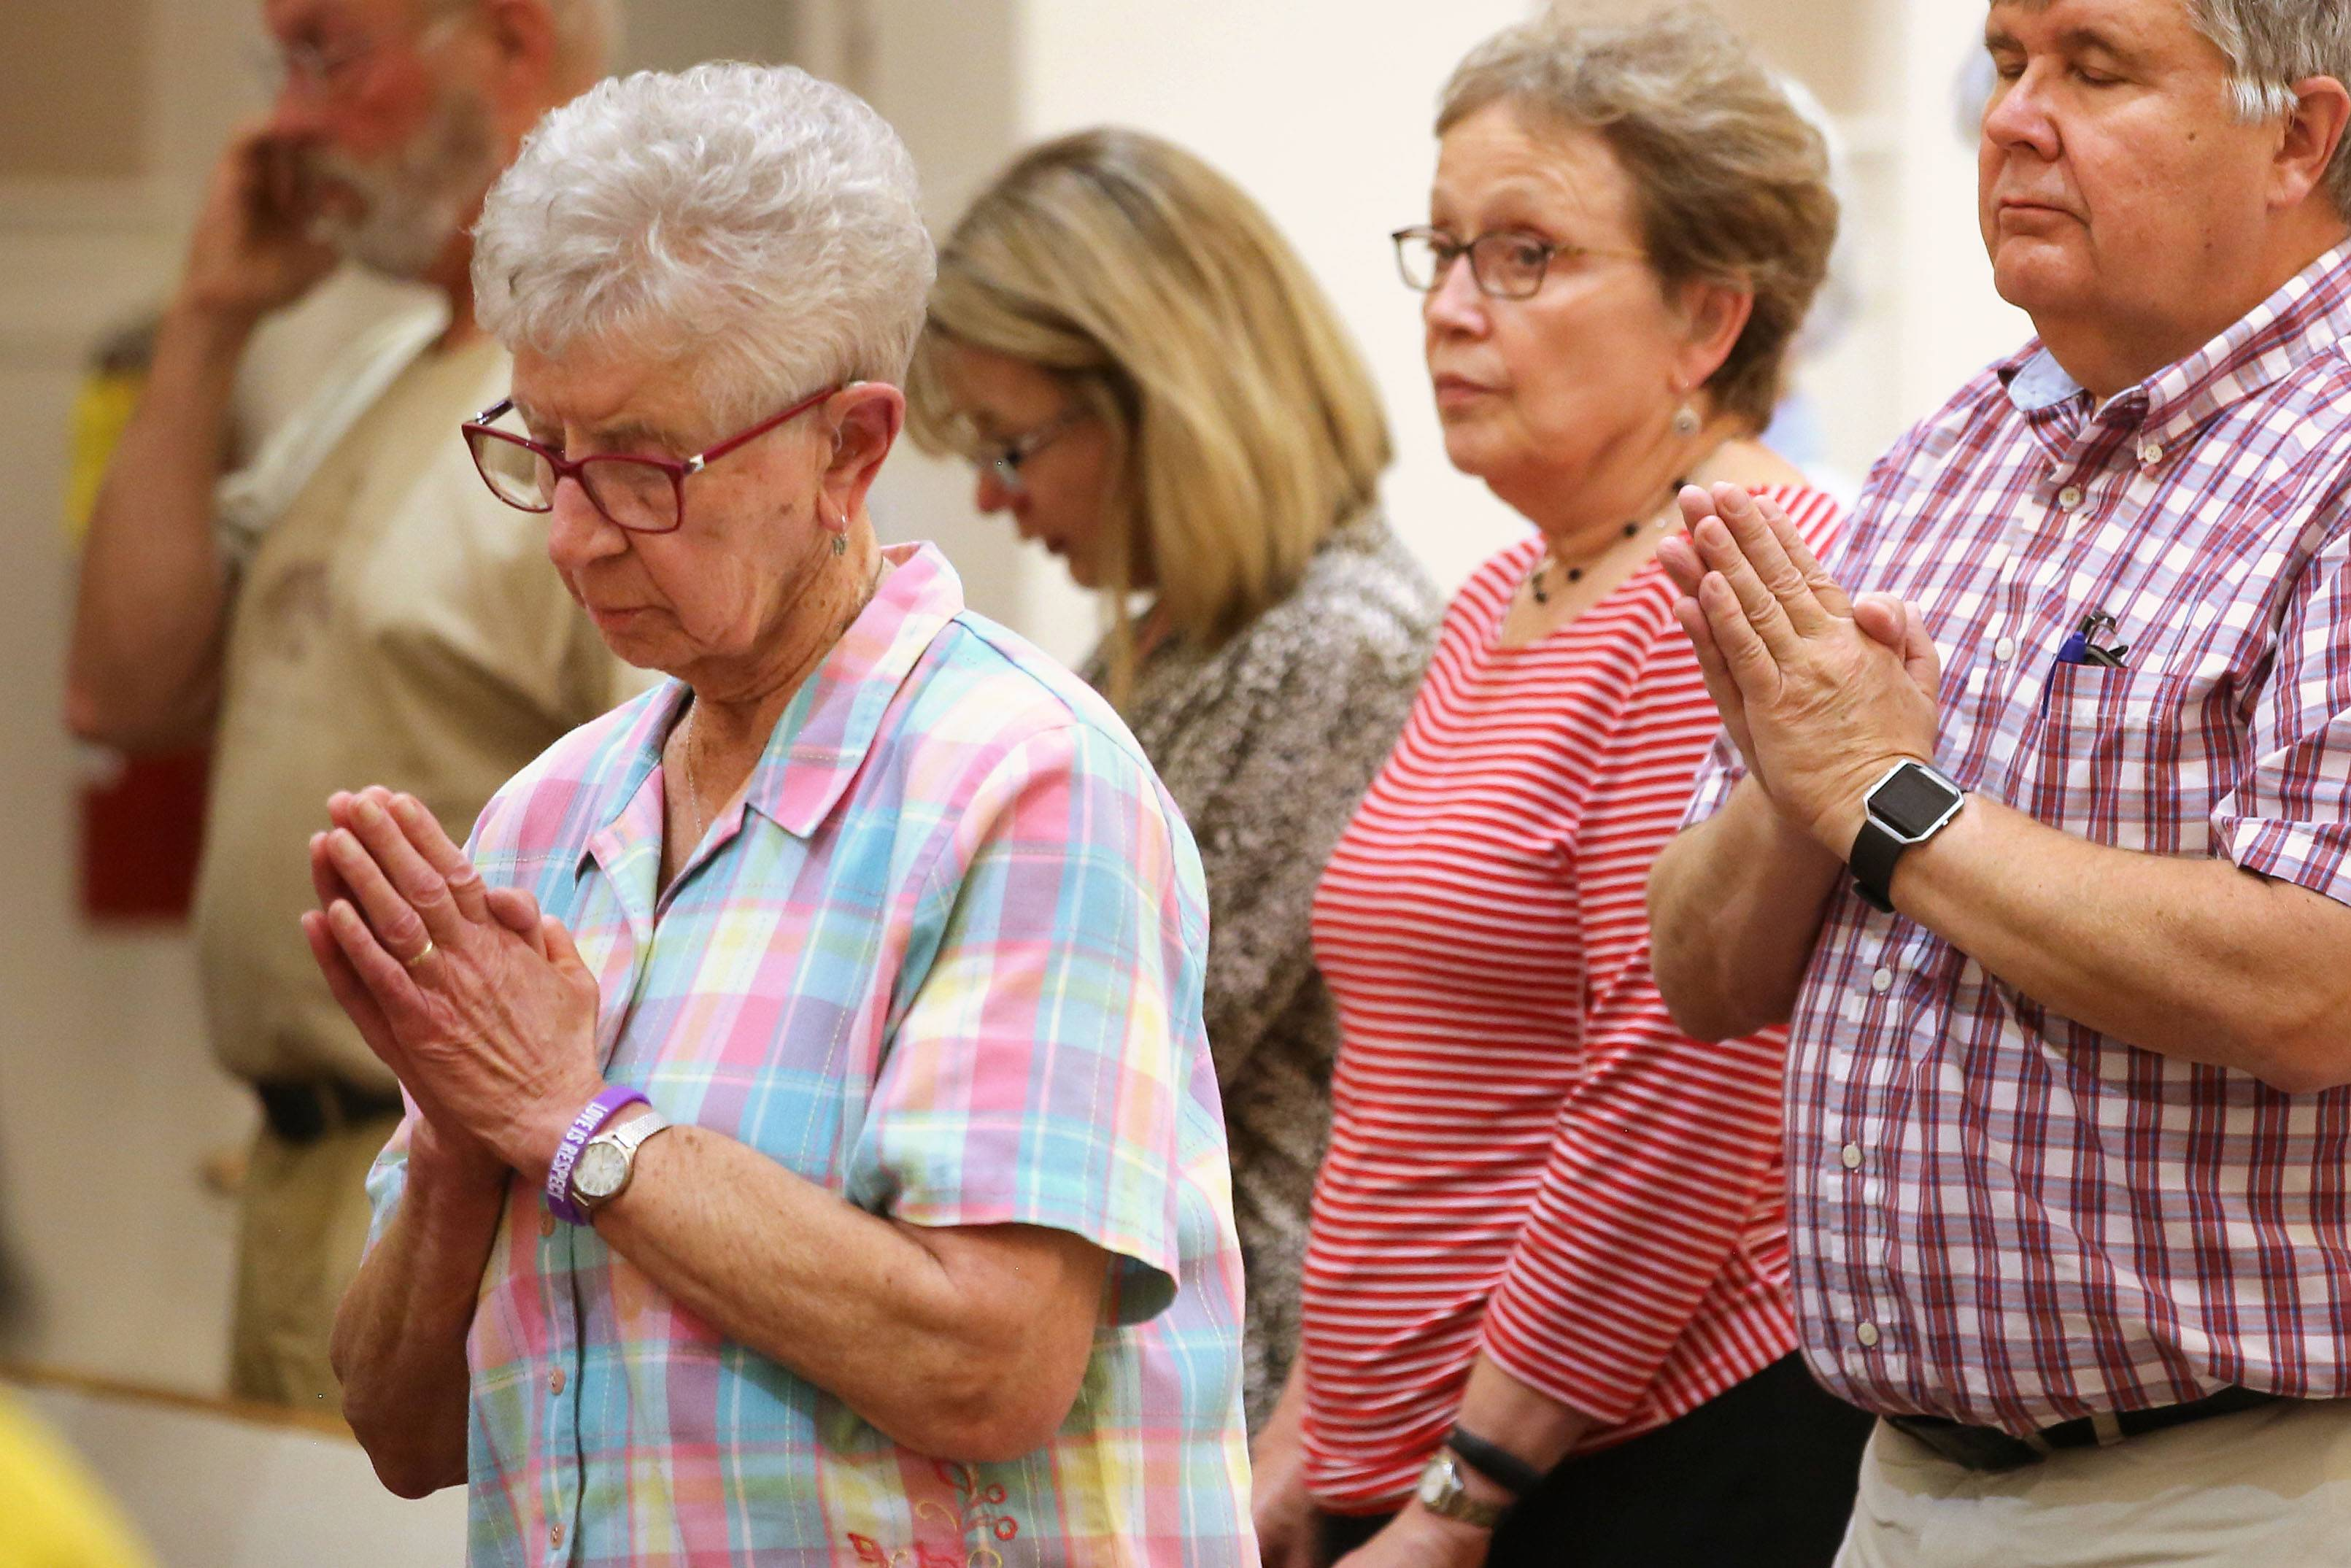 Sister Joanne Grib, left, of Arlington Heights prays during a prayer vigil for the Las Vegas shooting victims Monday evening at St. James Catholic Church in the village.